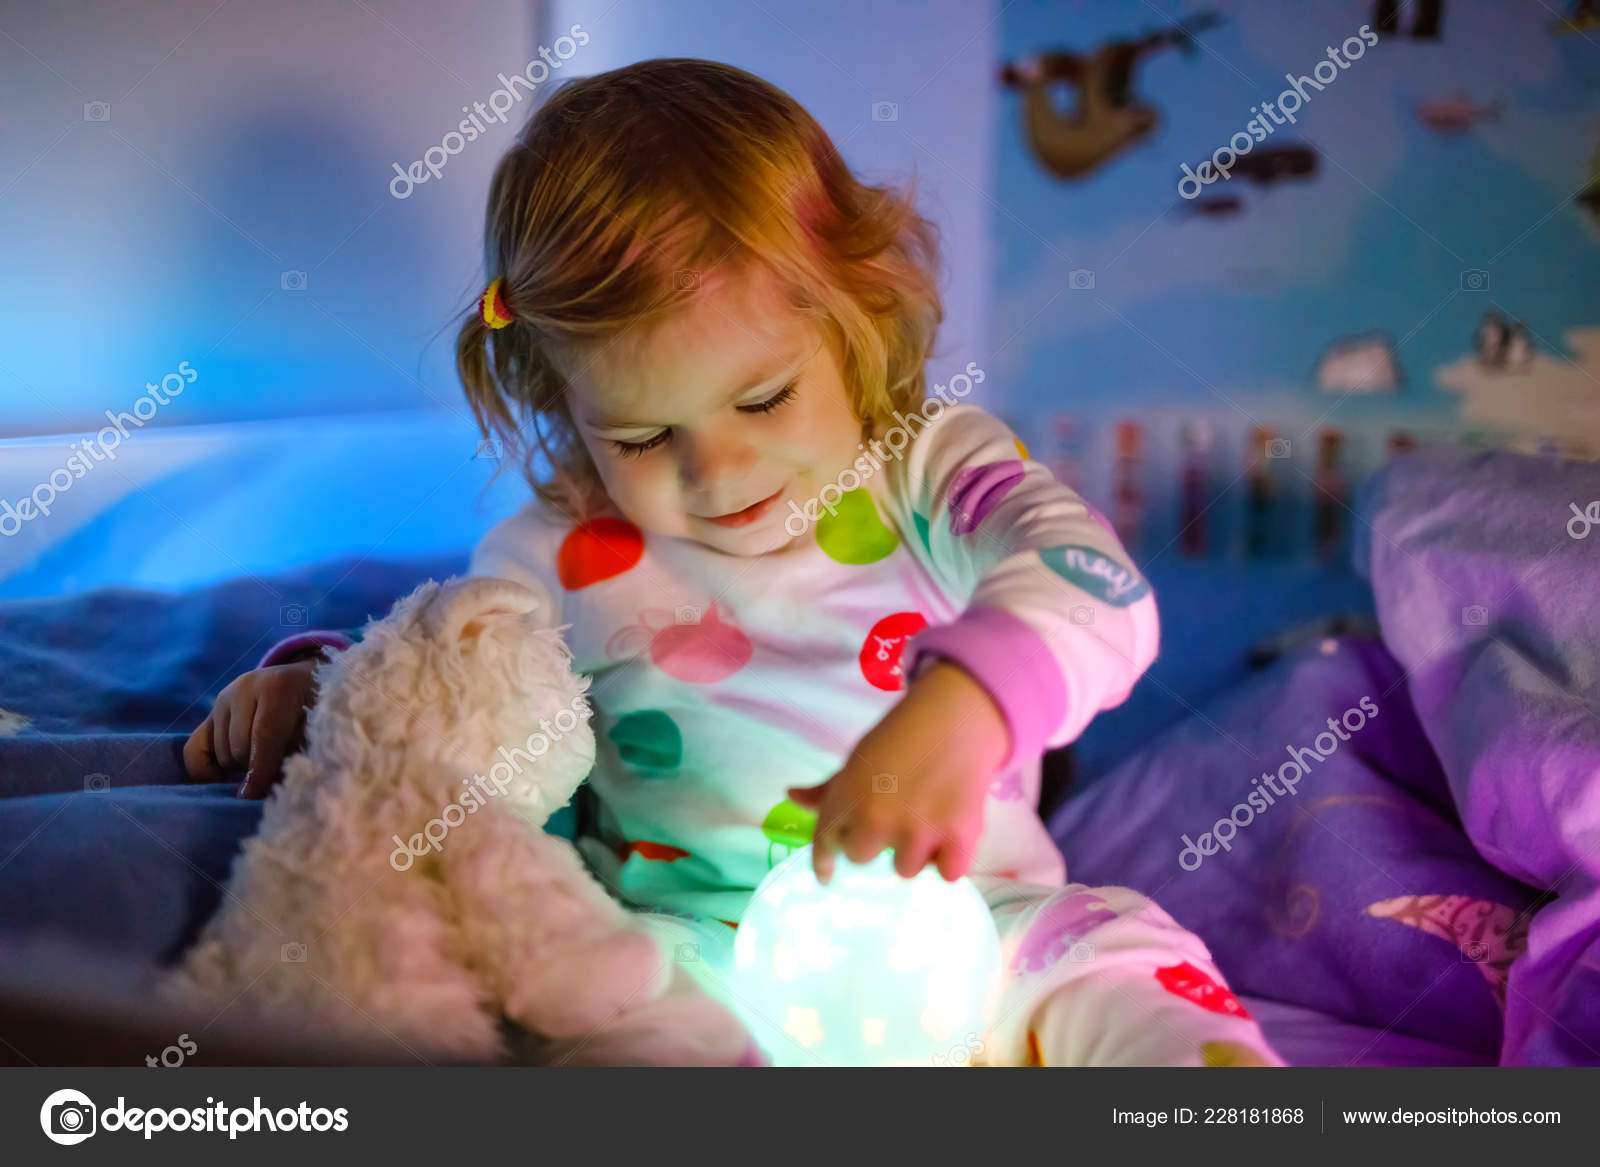 Girl Night Lights Cute Little Toddler Girl Playing With Colorful Night Light Lamp